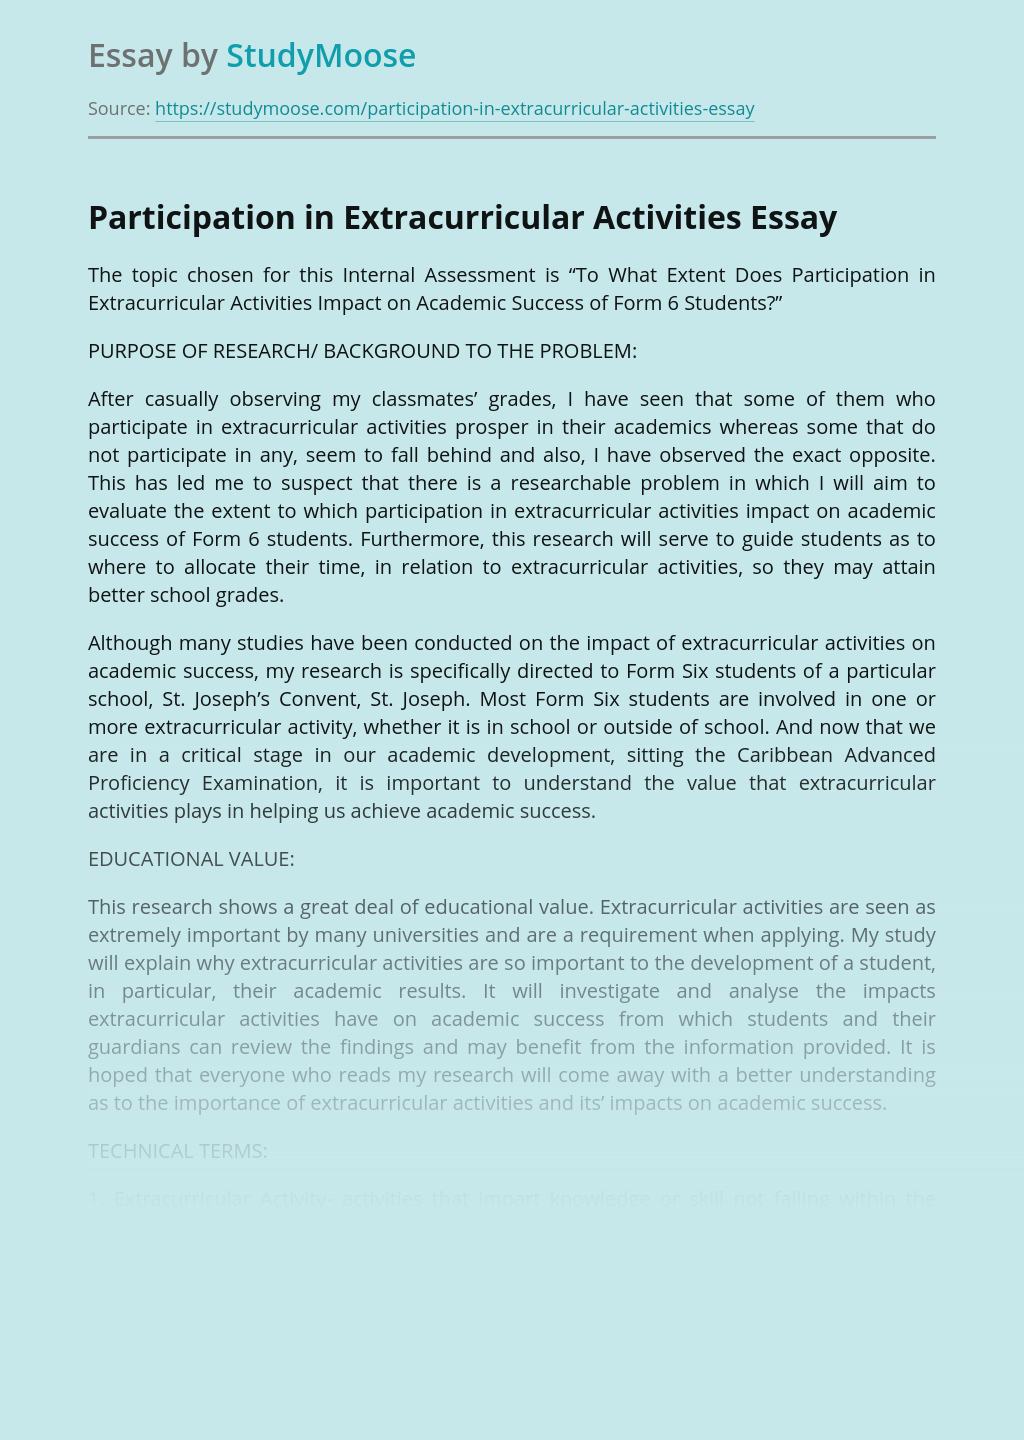 Participation in Extracurricular Activities